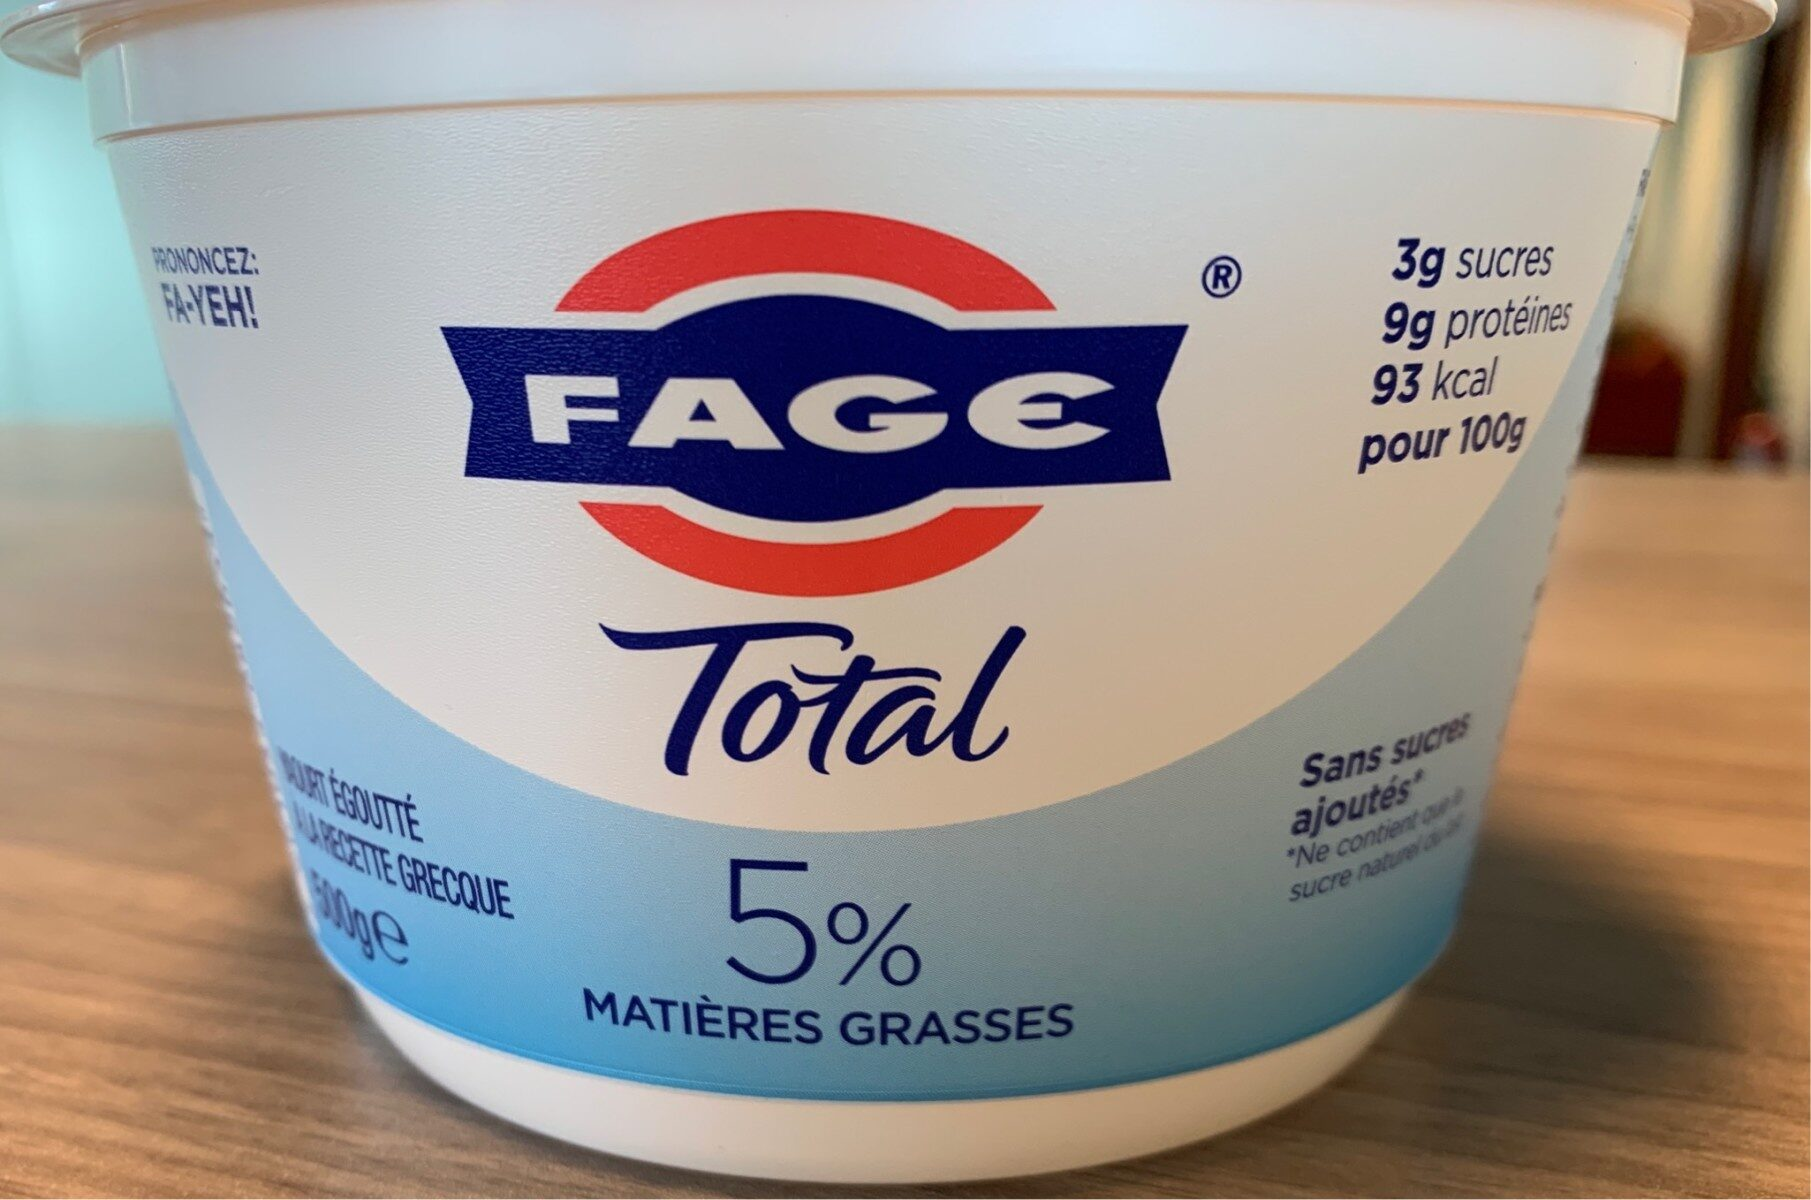 Yaourt Grecque Total 5% MG - Product - fr